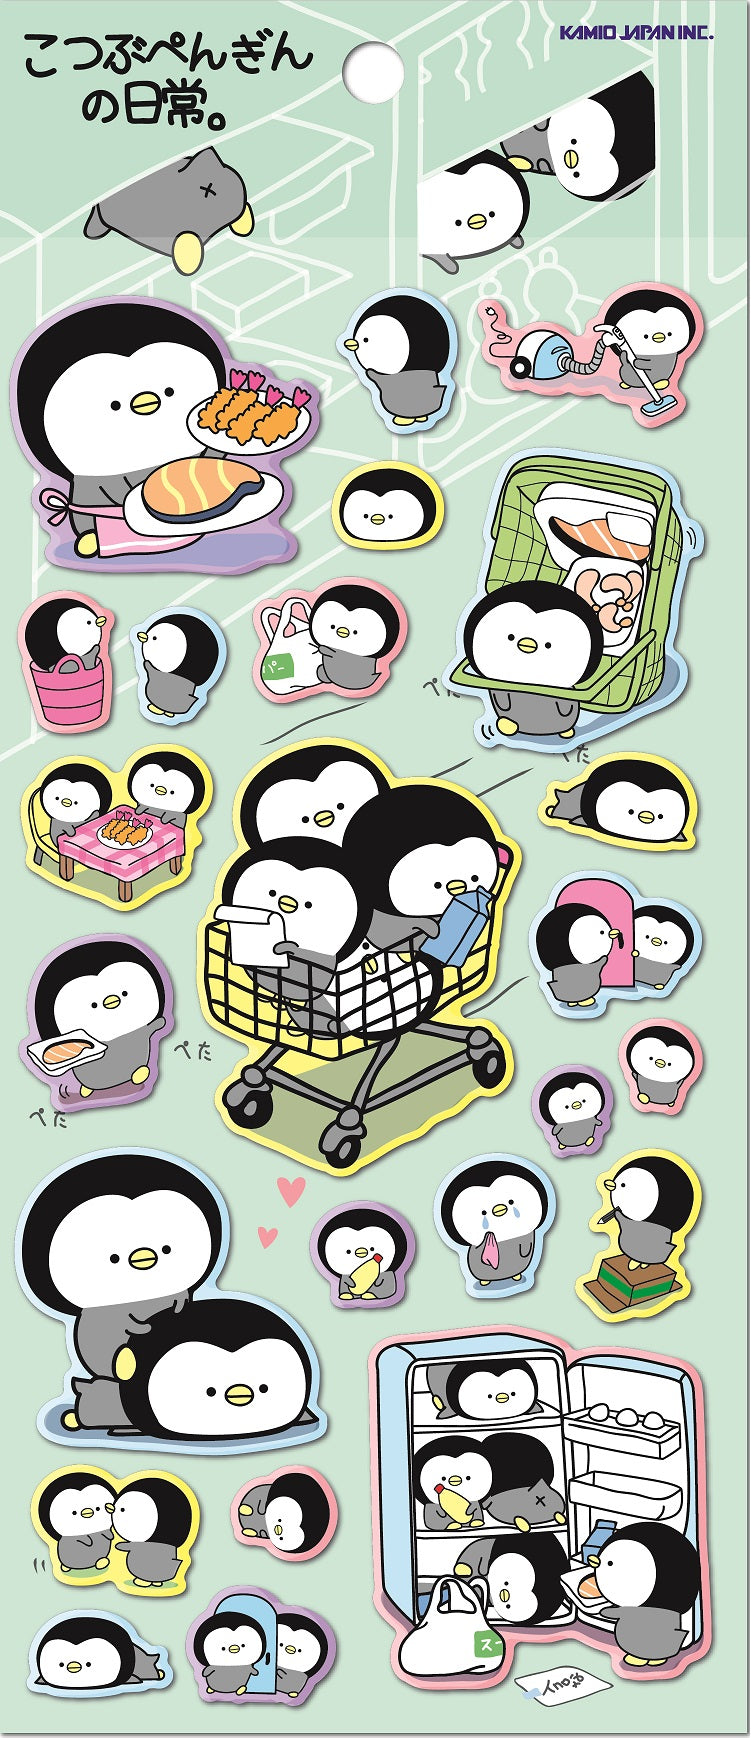 46382 KAMIO PENGUIN PUFFY STICKERS -10